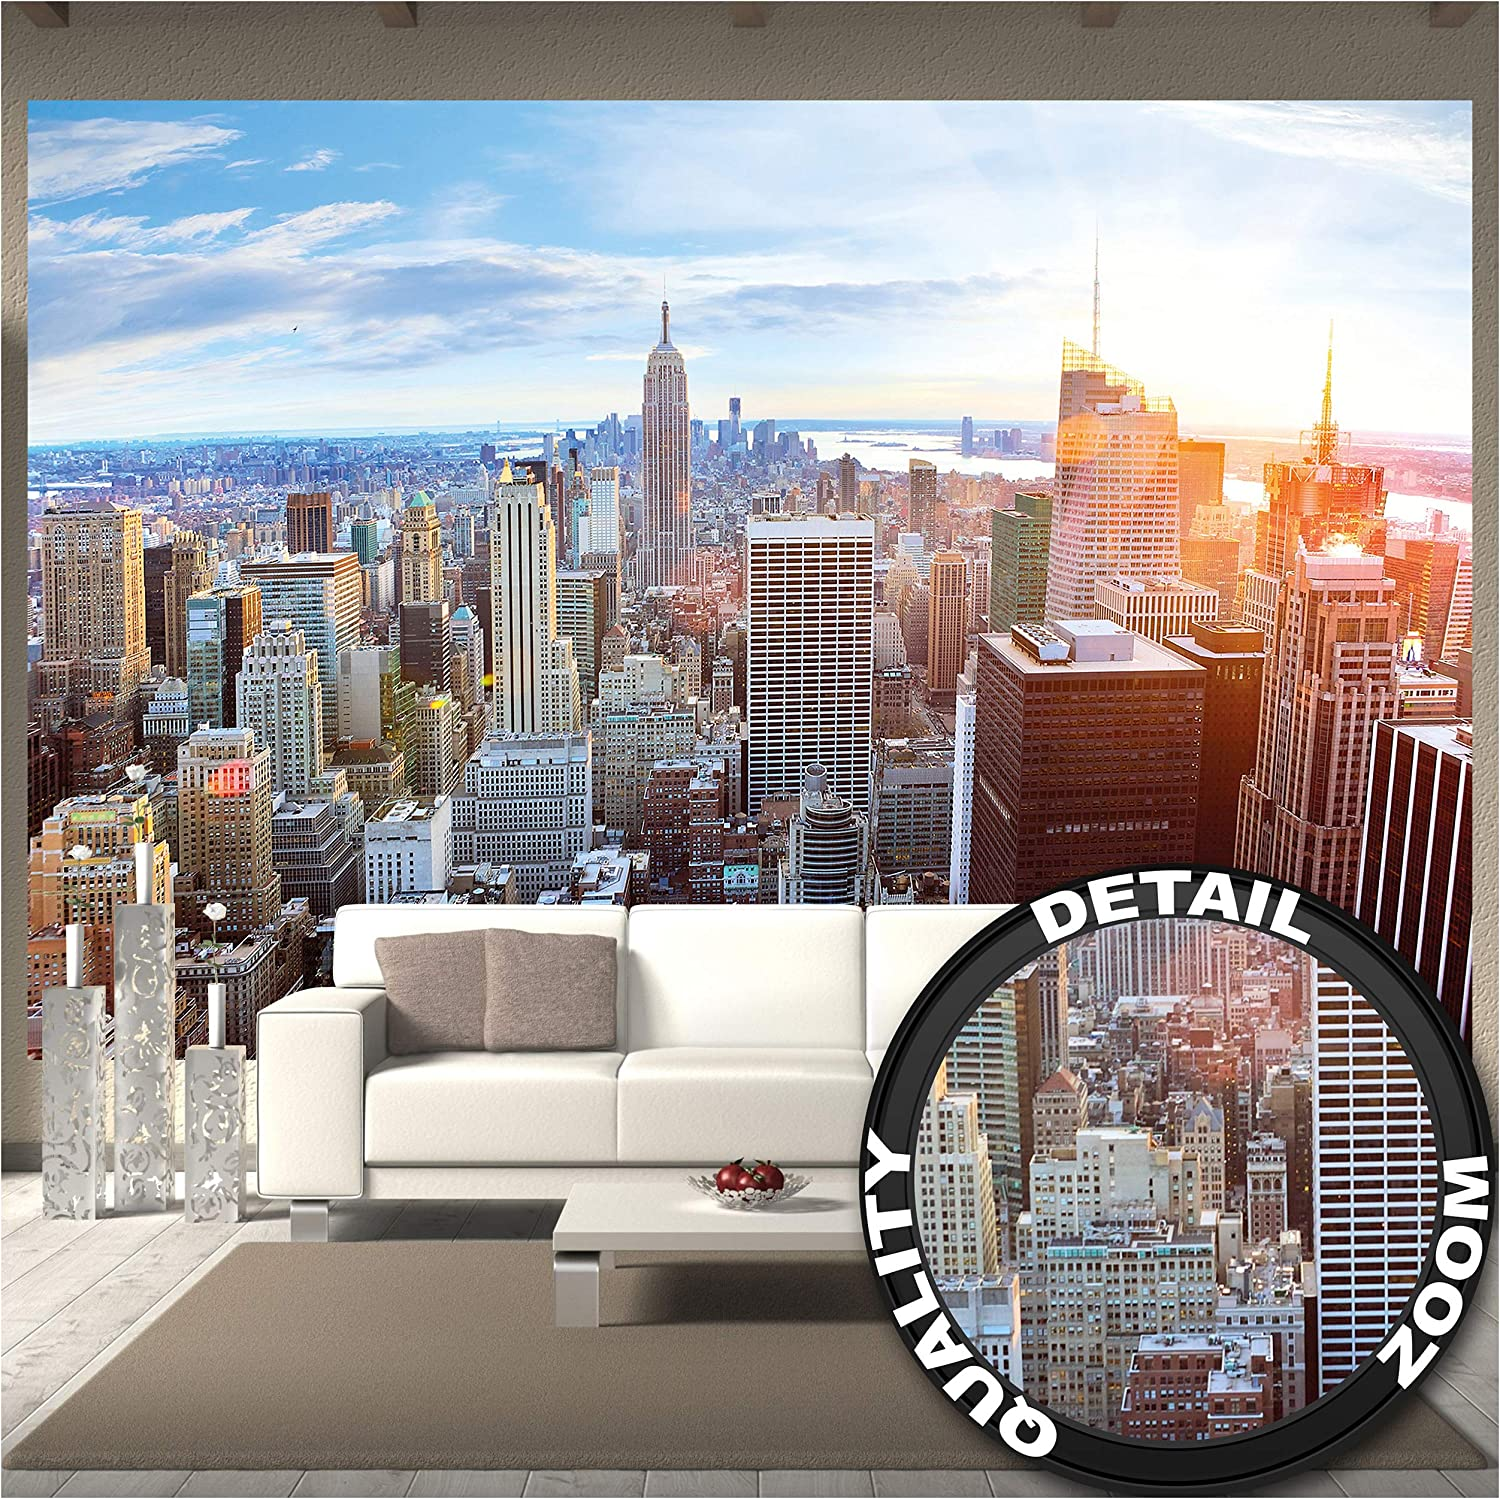 3D WINDOW VIEW PANORAMA Wall Mural Photo Wallpaper  CITY SCAPE Urban street